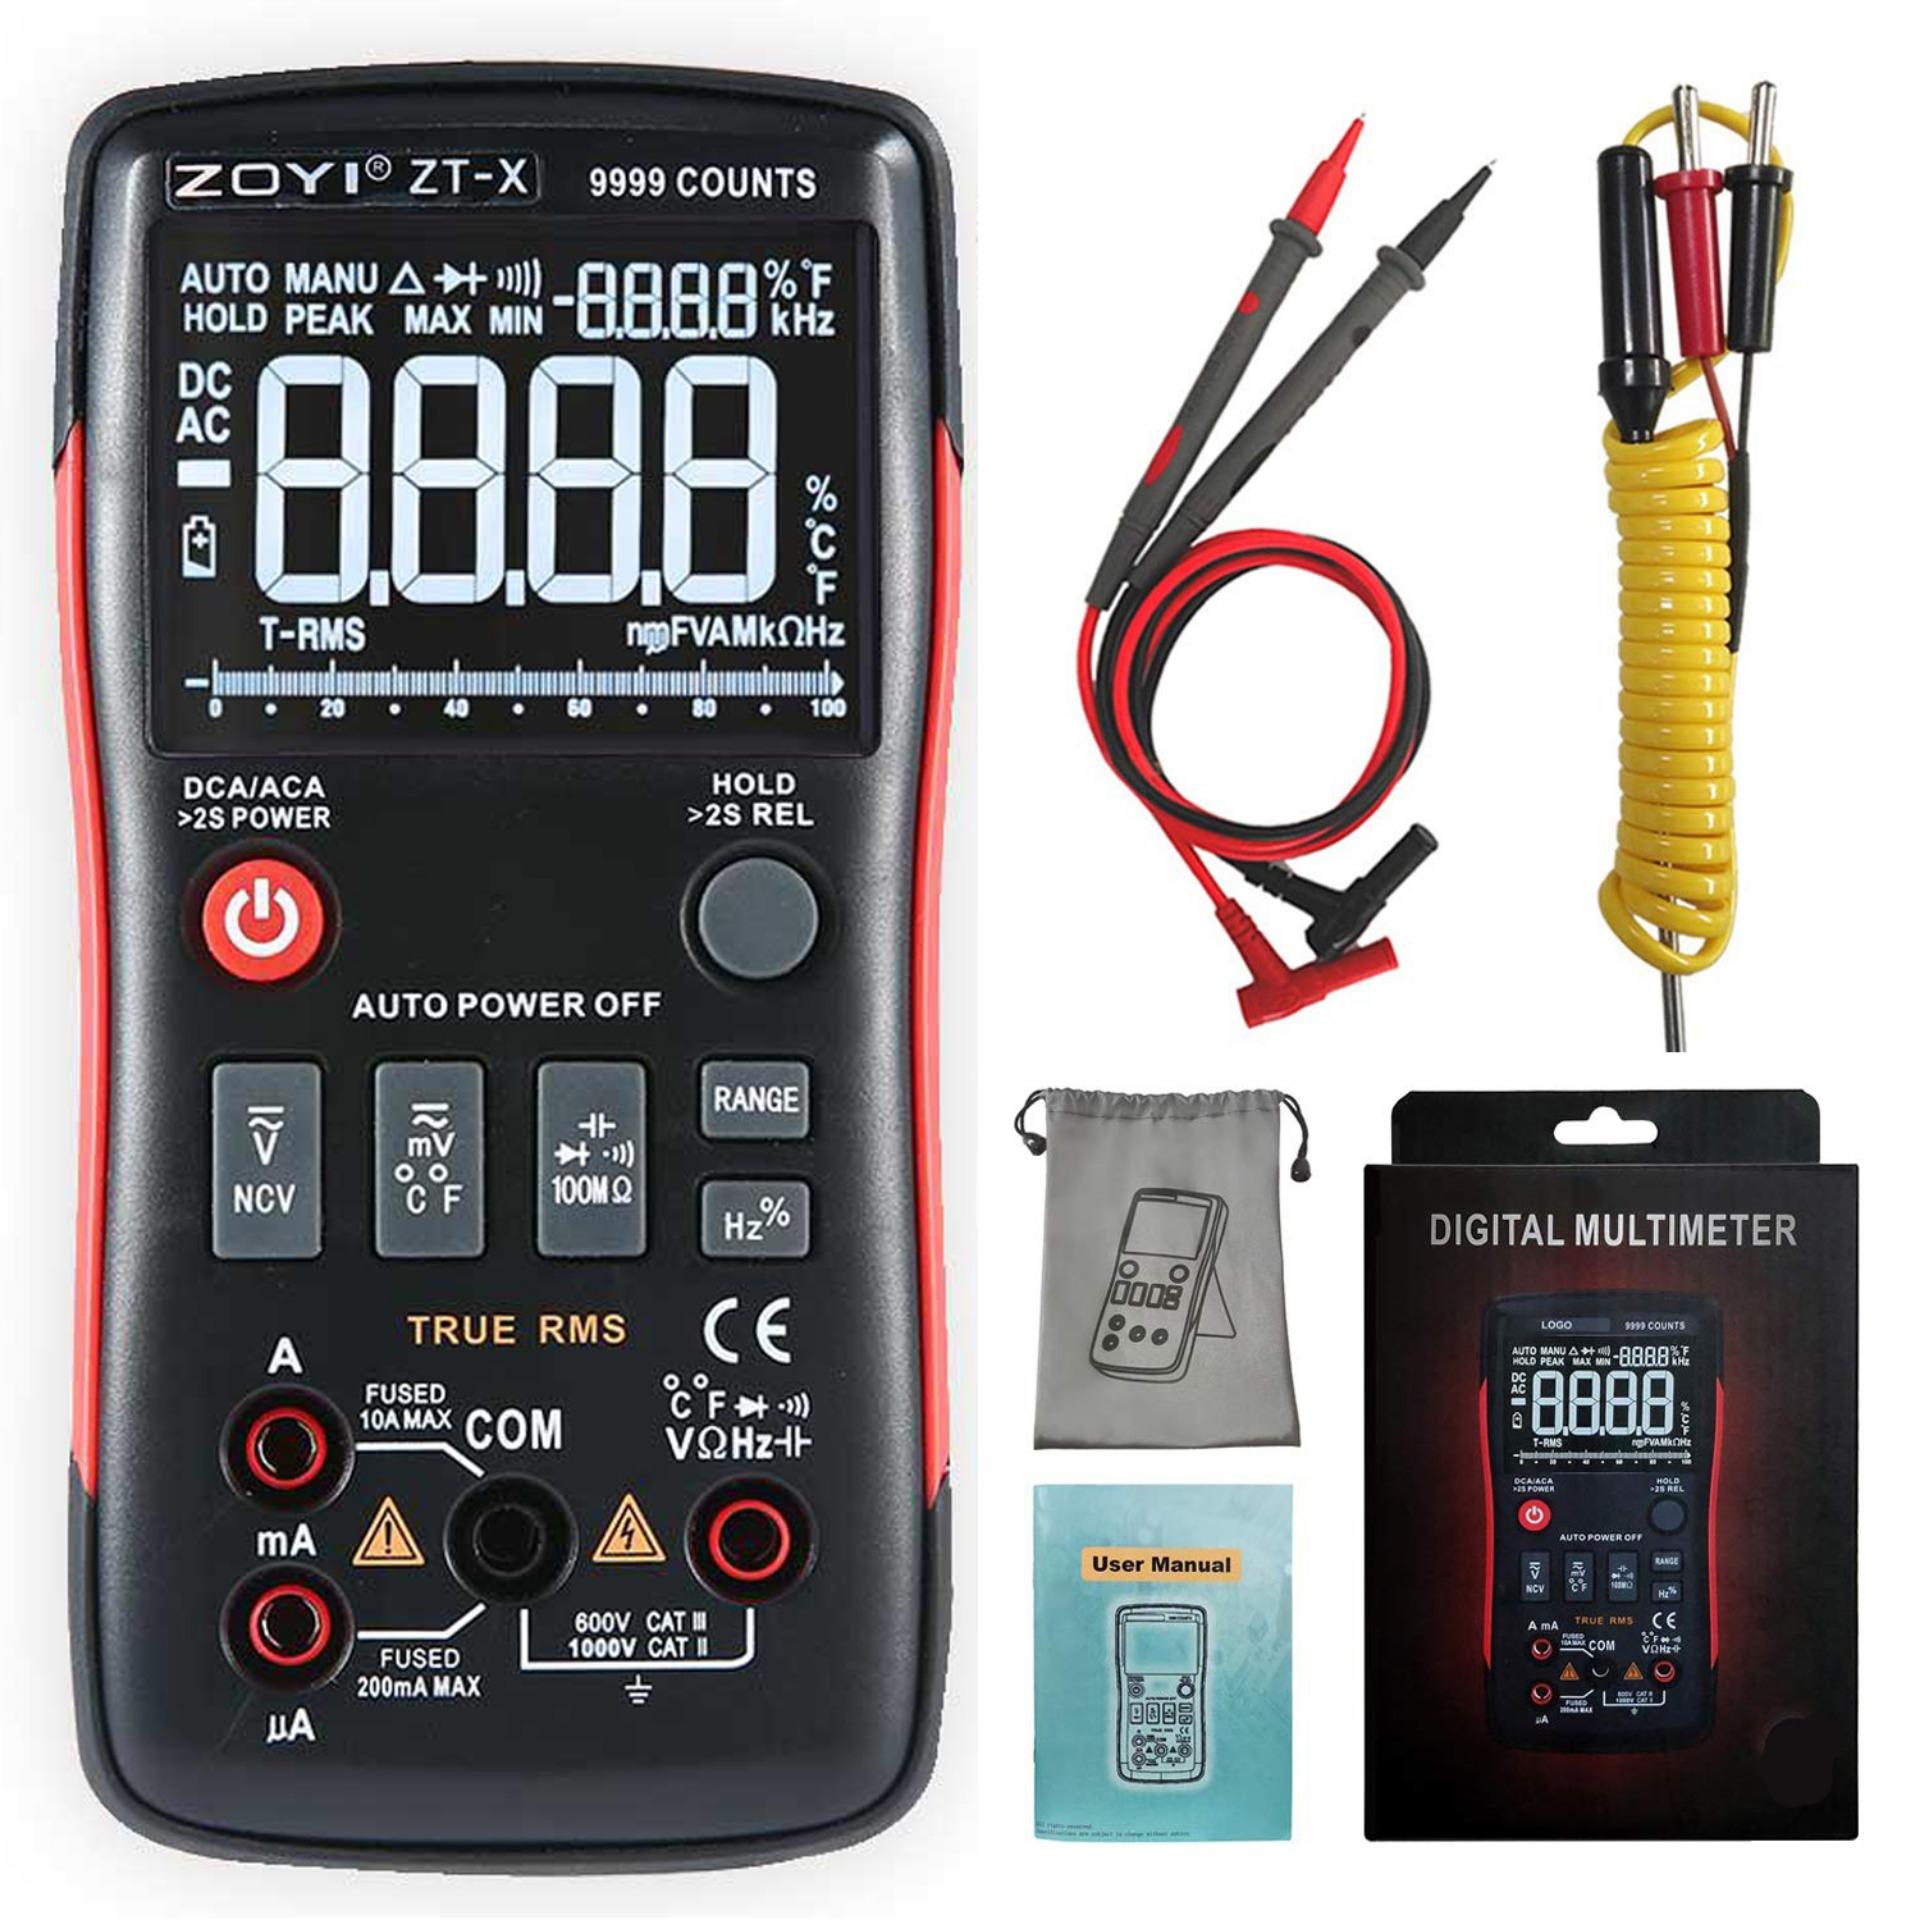 Top-Sky 【zoyi】zt-X True-Rms Digital Multimeter 3-Line Dispaly 9999 Counts Button Design Auto-Ranging Dmm Temperature Capacitance Ac/dc Voltage Current Multi Meter Tester With Analog Bargraph By Topsky.